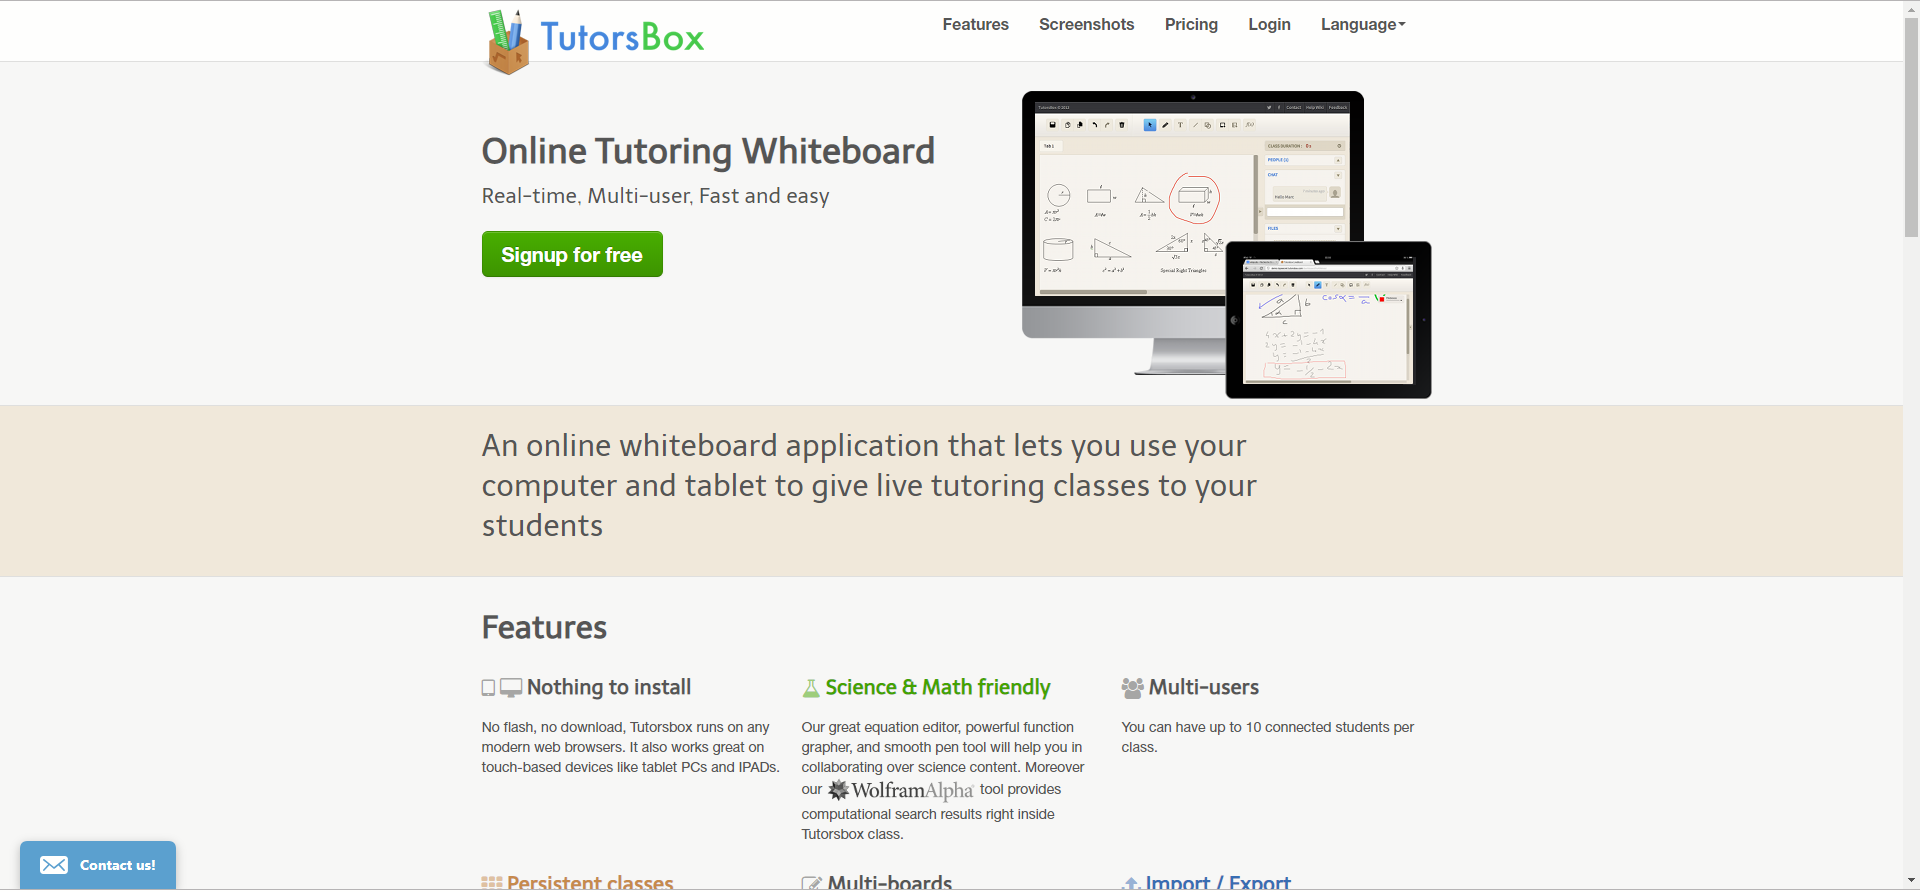 best online whiteboard,google whiteboard,online whiteboard for teaching,online tutoring platform,digital whiteboard,online tutoring companies,interactive whiteboard,live online tutoring,online tutoring services